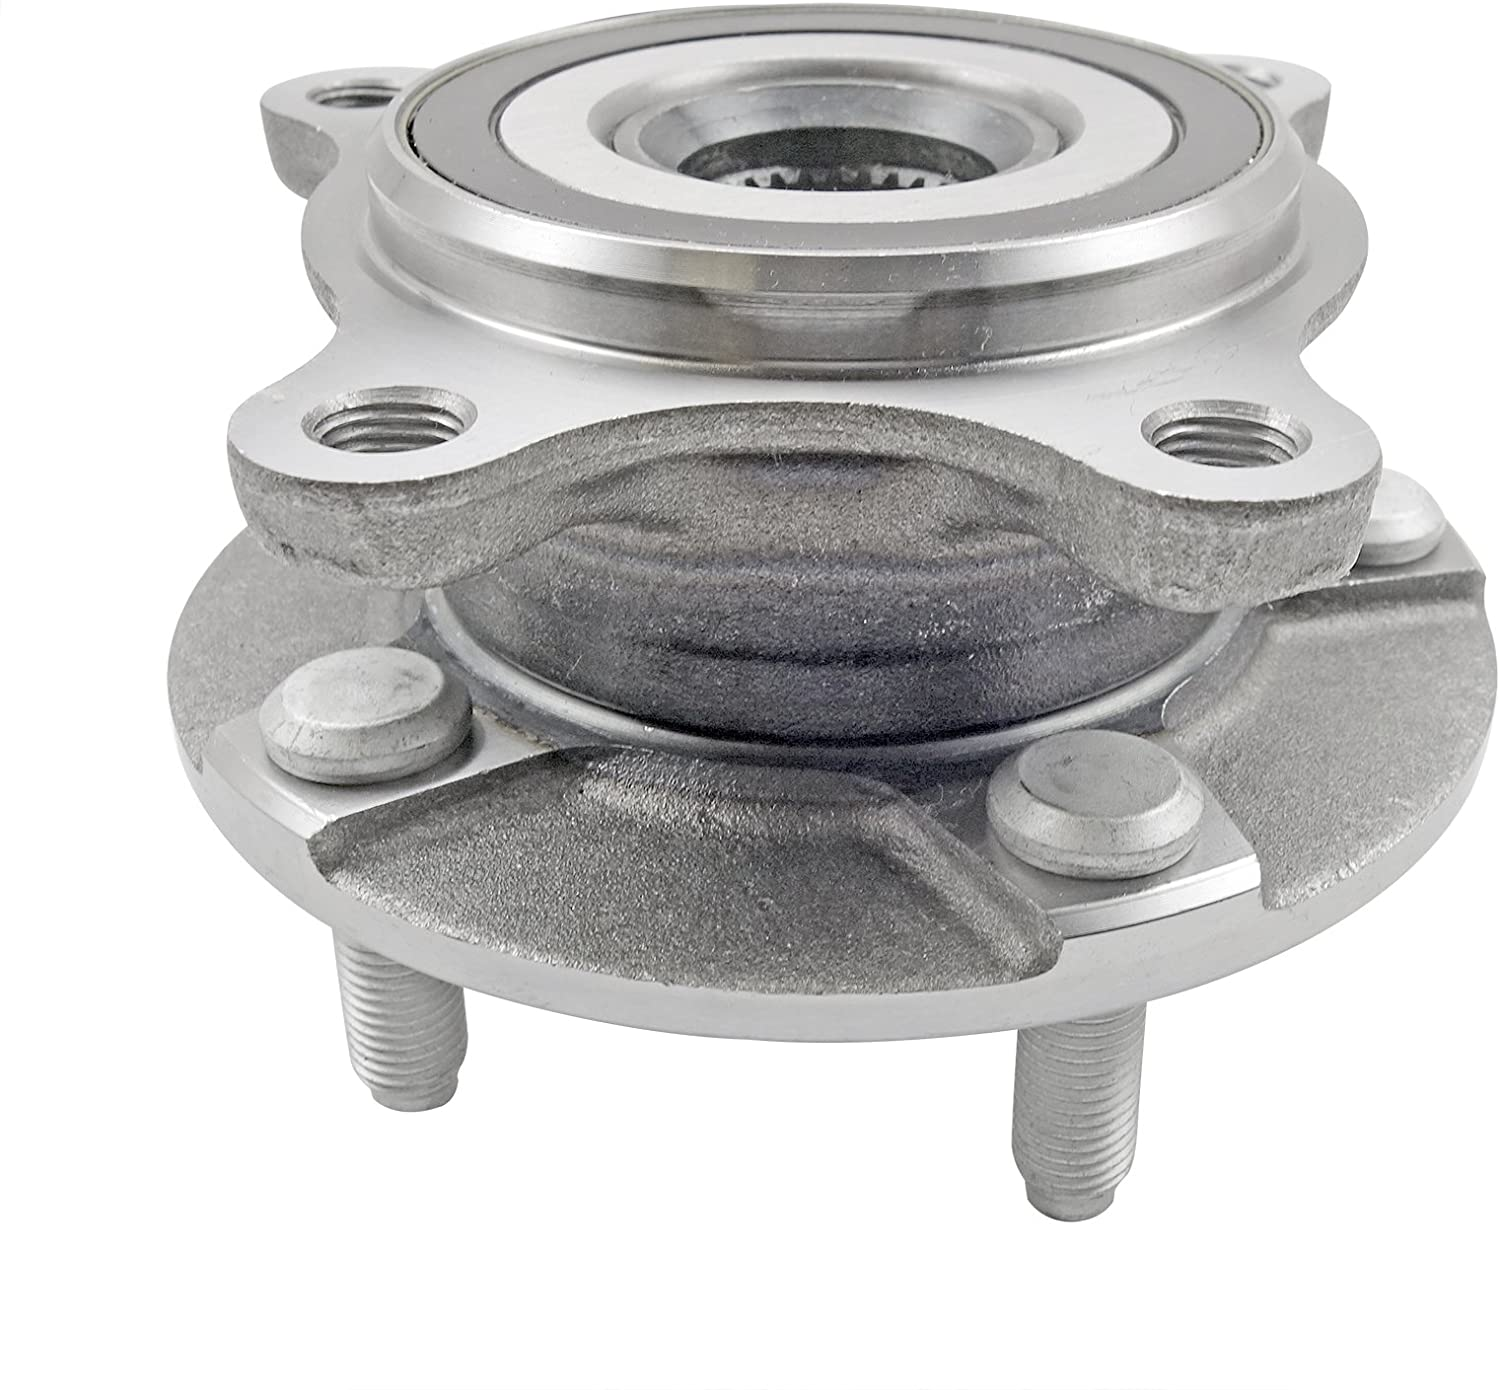 CRS NT590140 New Wheel Bearing Hub Assembly, Front Left (Driver), forLexus IS250 2006-2015/IS350 2006-2016/RC350 2015-2016/GS300/GS350/GS430/GS450H/GS460 2006-2016 (Exc.2012), AWD